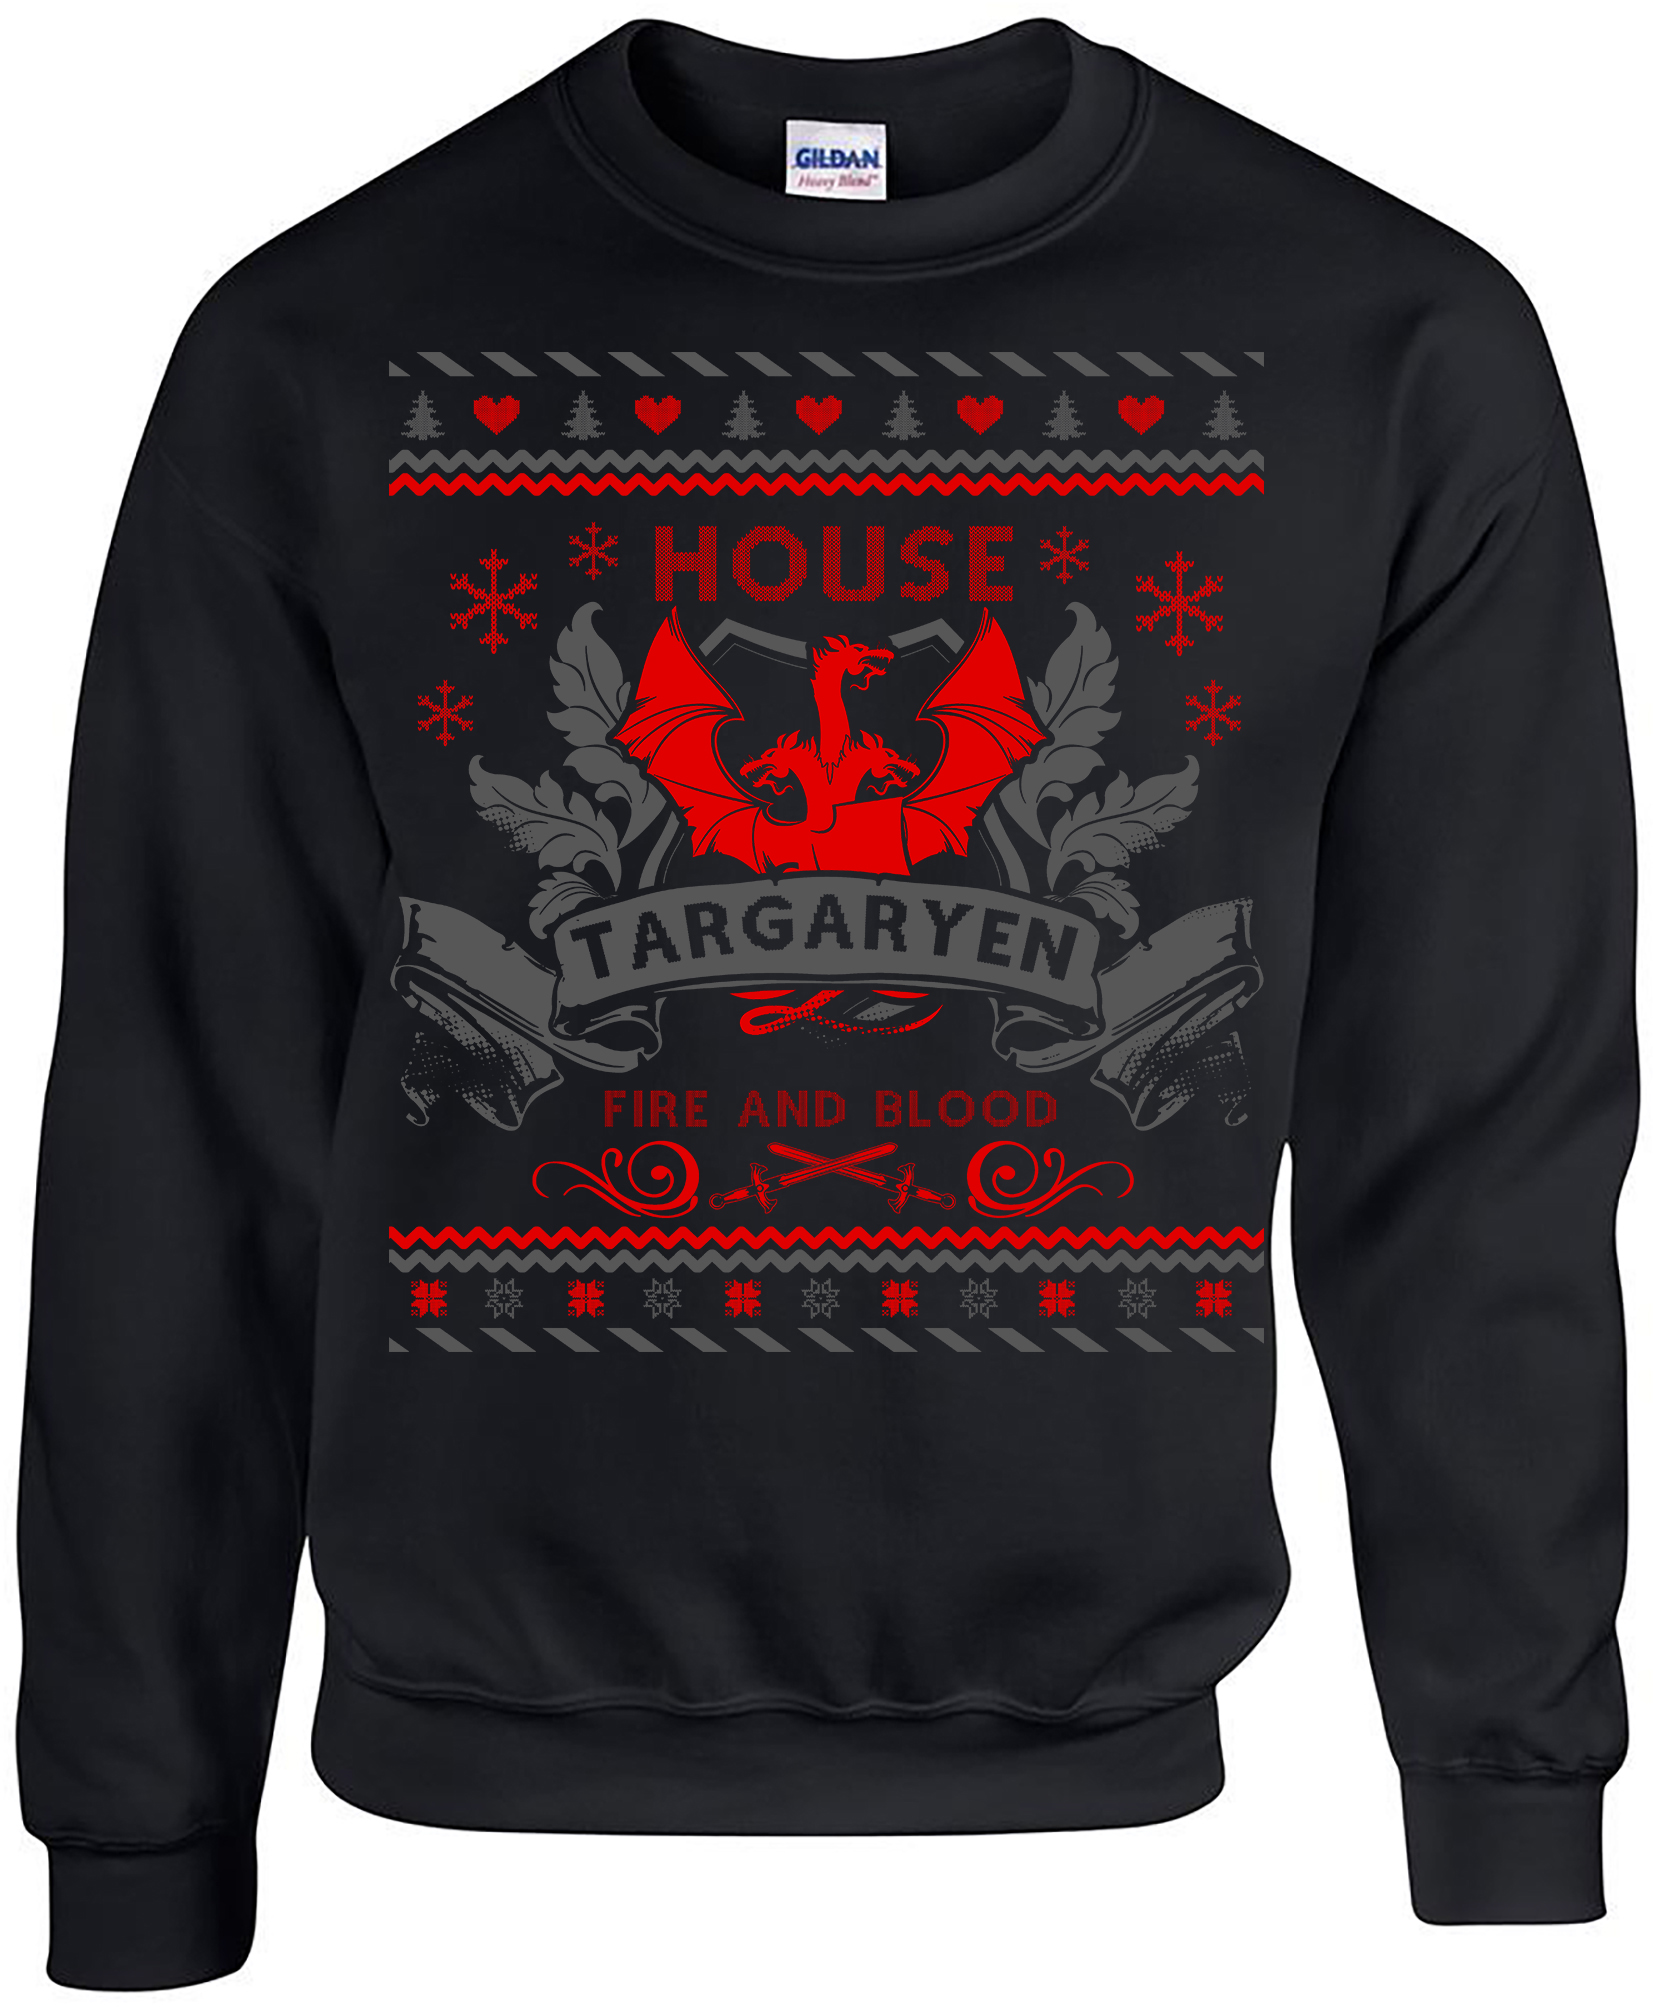 Game of Thrones. Ugly Christmas Sweater. Game of Thrones Sweatshirt. Ugly Sweater House of Targaryen. Unisex Sweatshirt OxRtZAV7jY